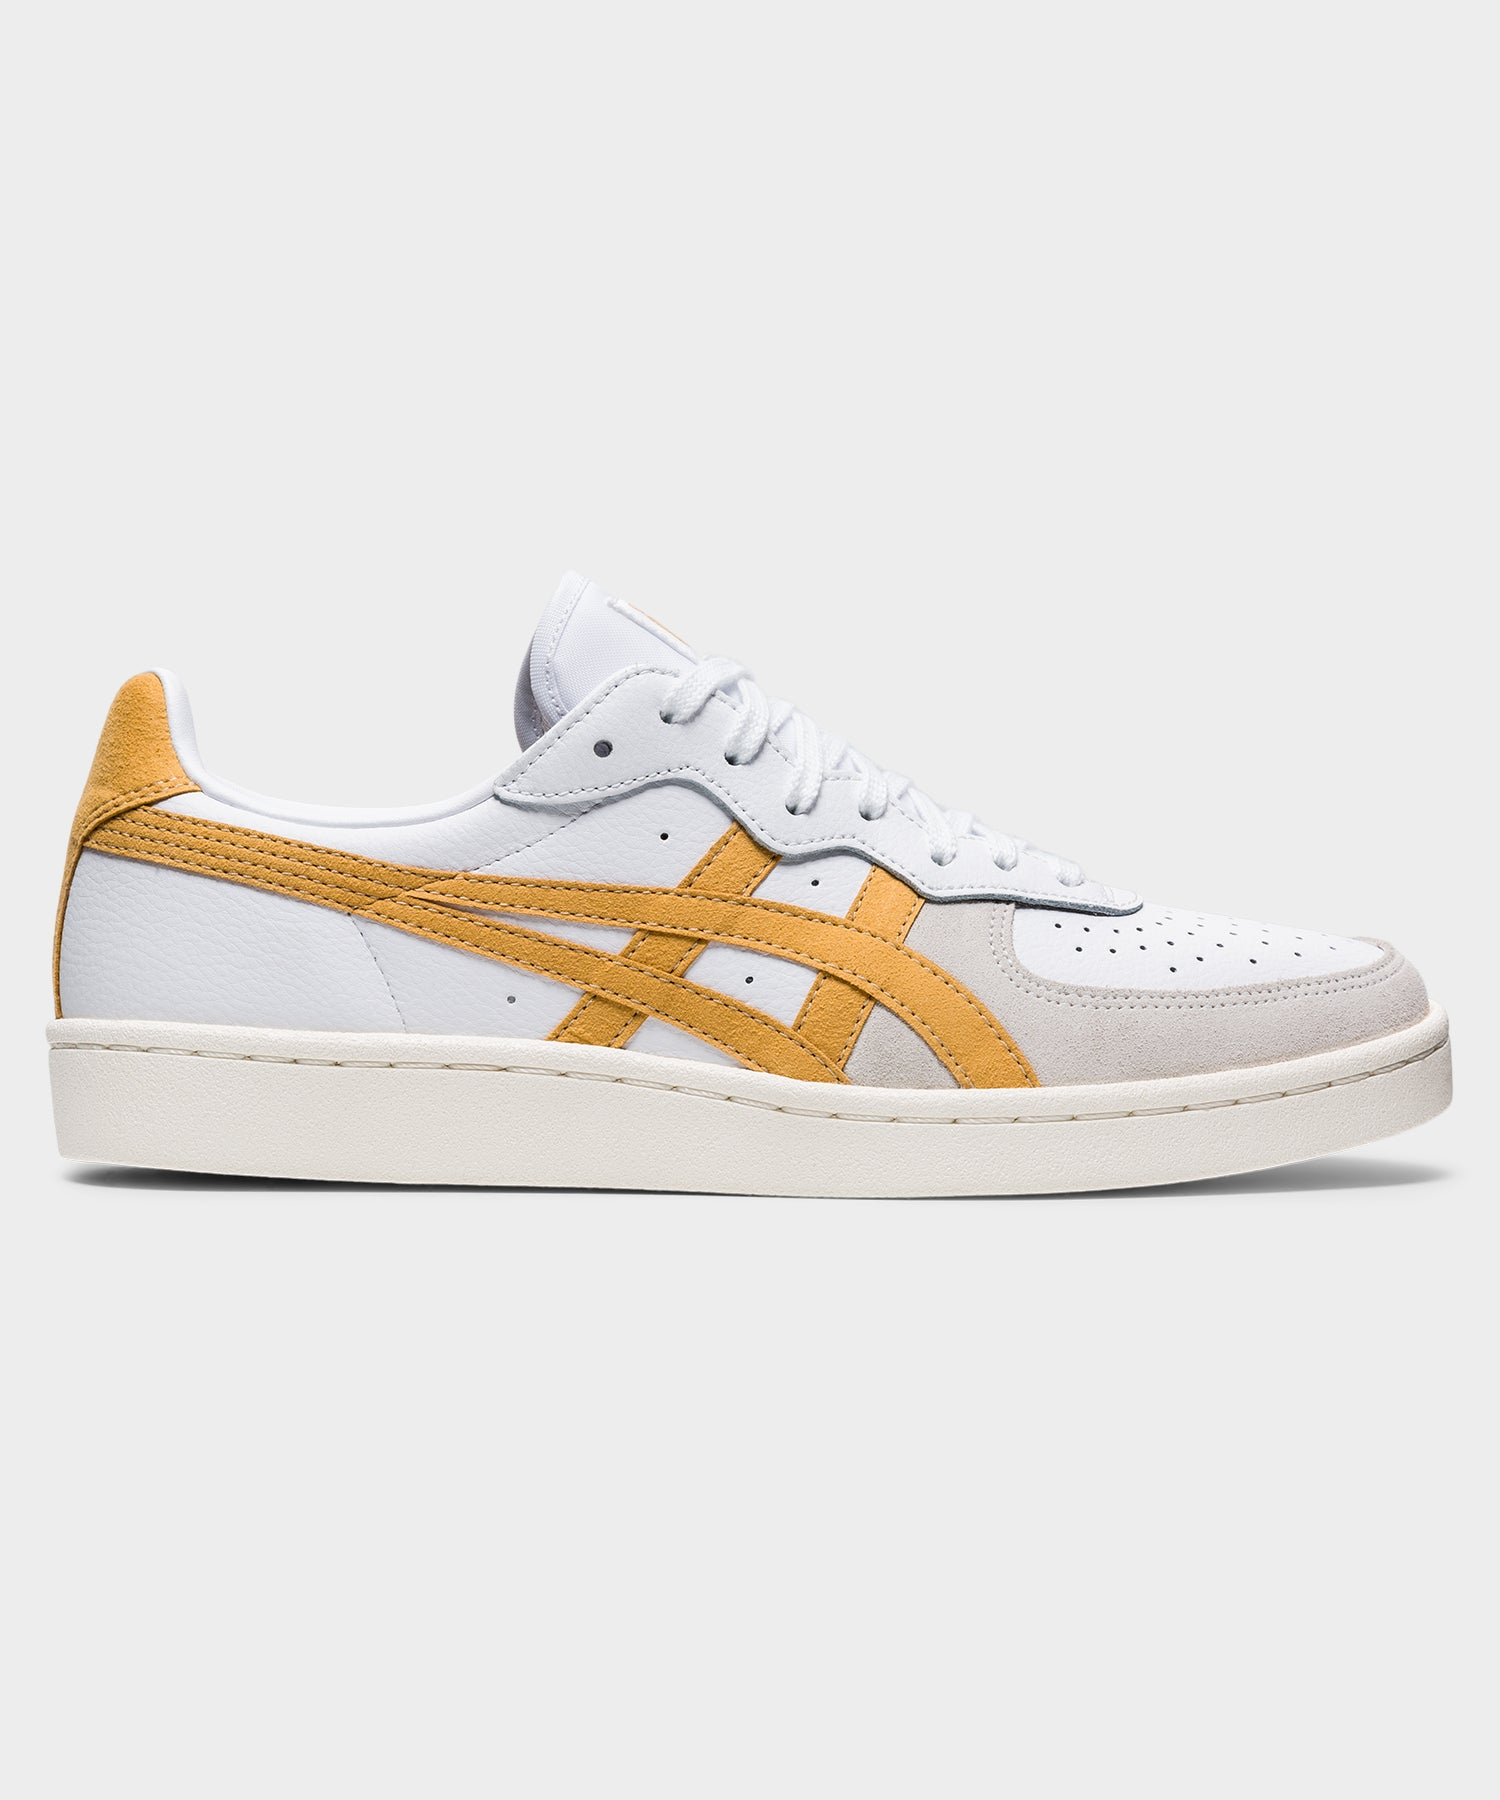 Onitsuka Tiger GSM in White/Yellow